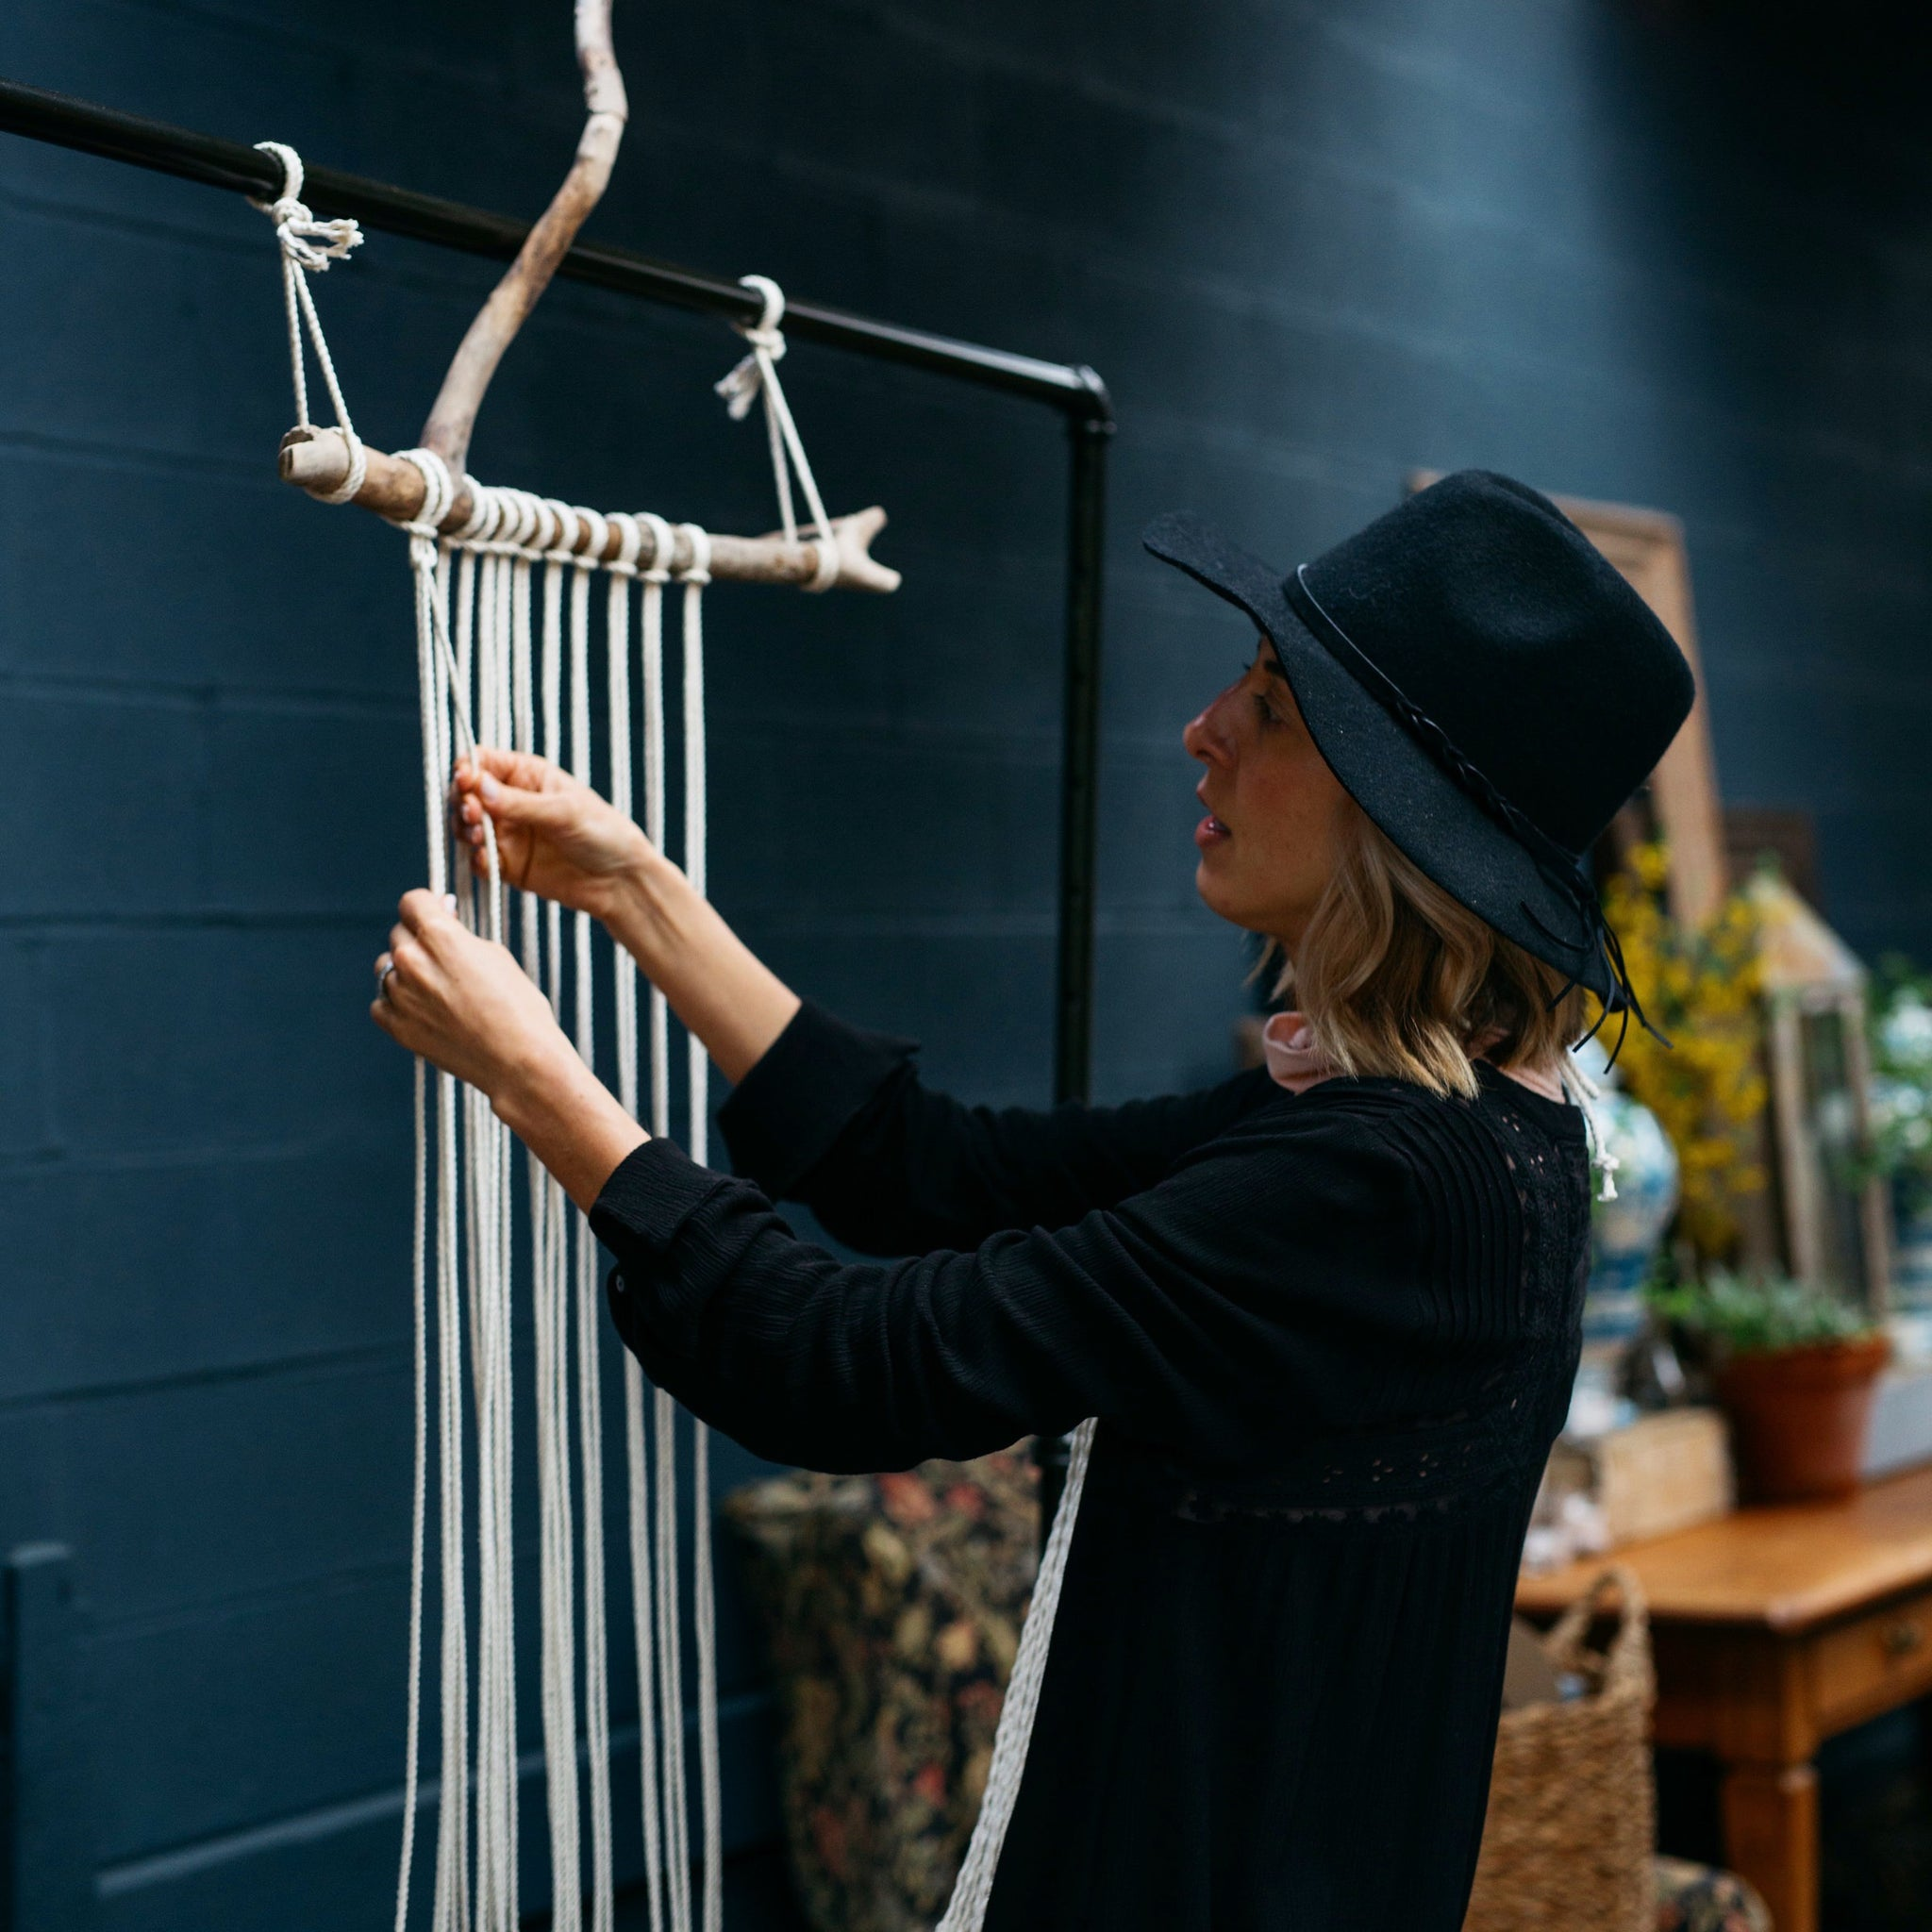 MACRAMÉ WALL HANGING WORKSHOP & 3 COURSE LUNCH | CUCINA